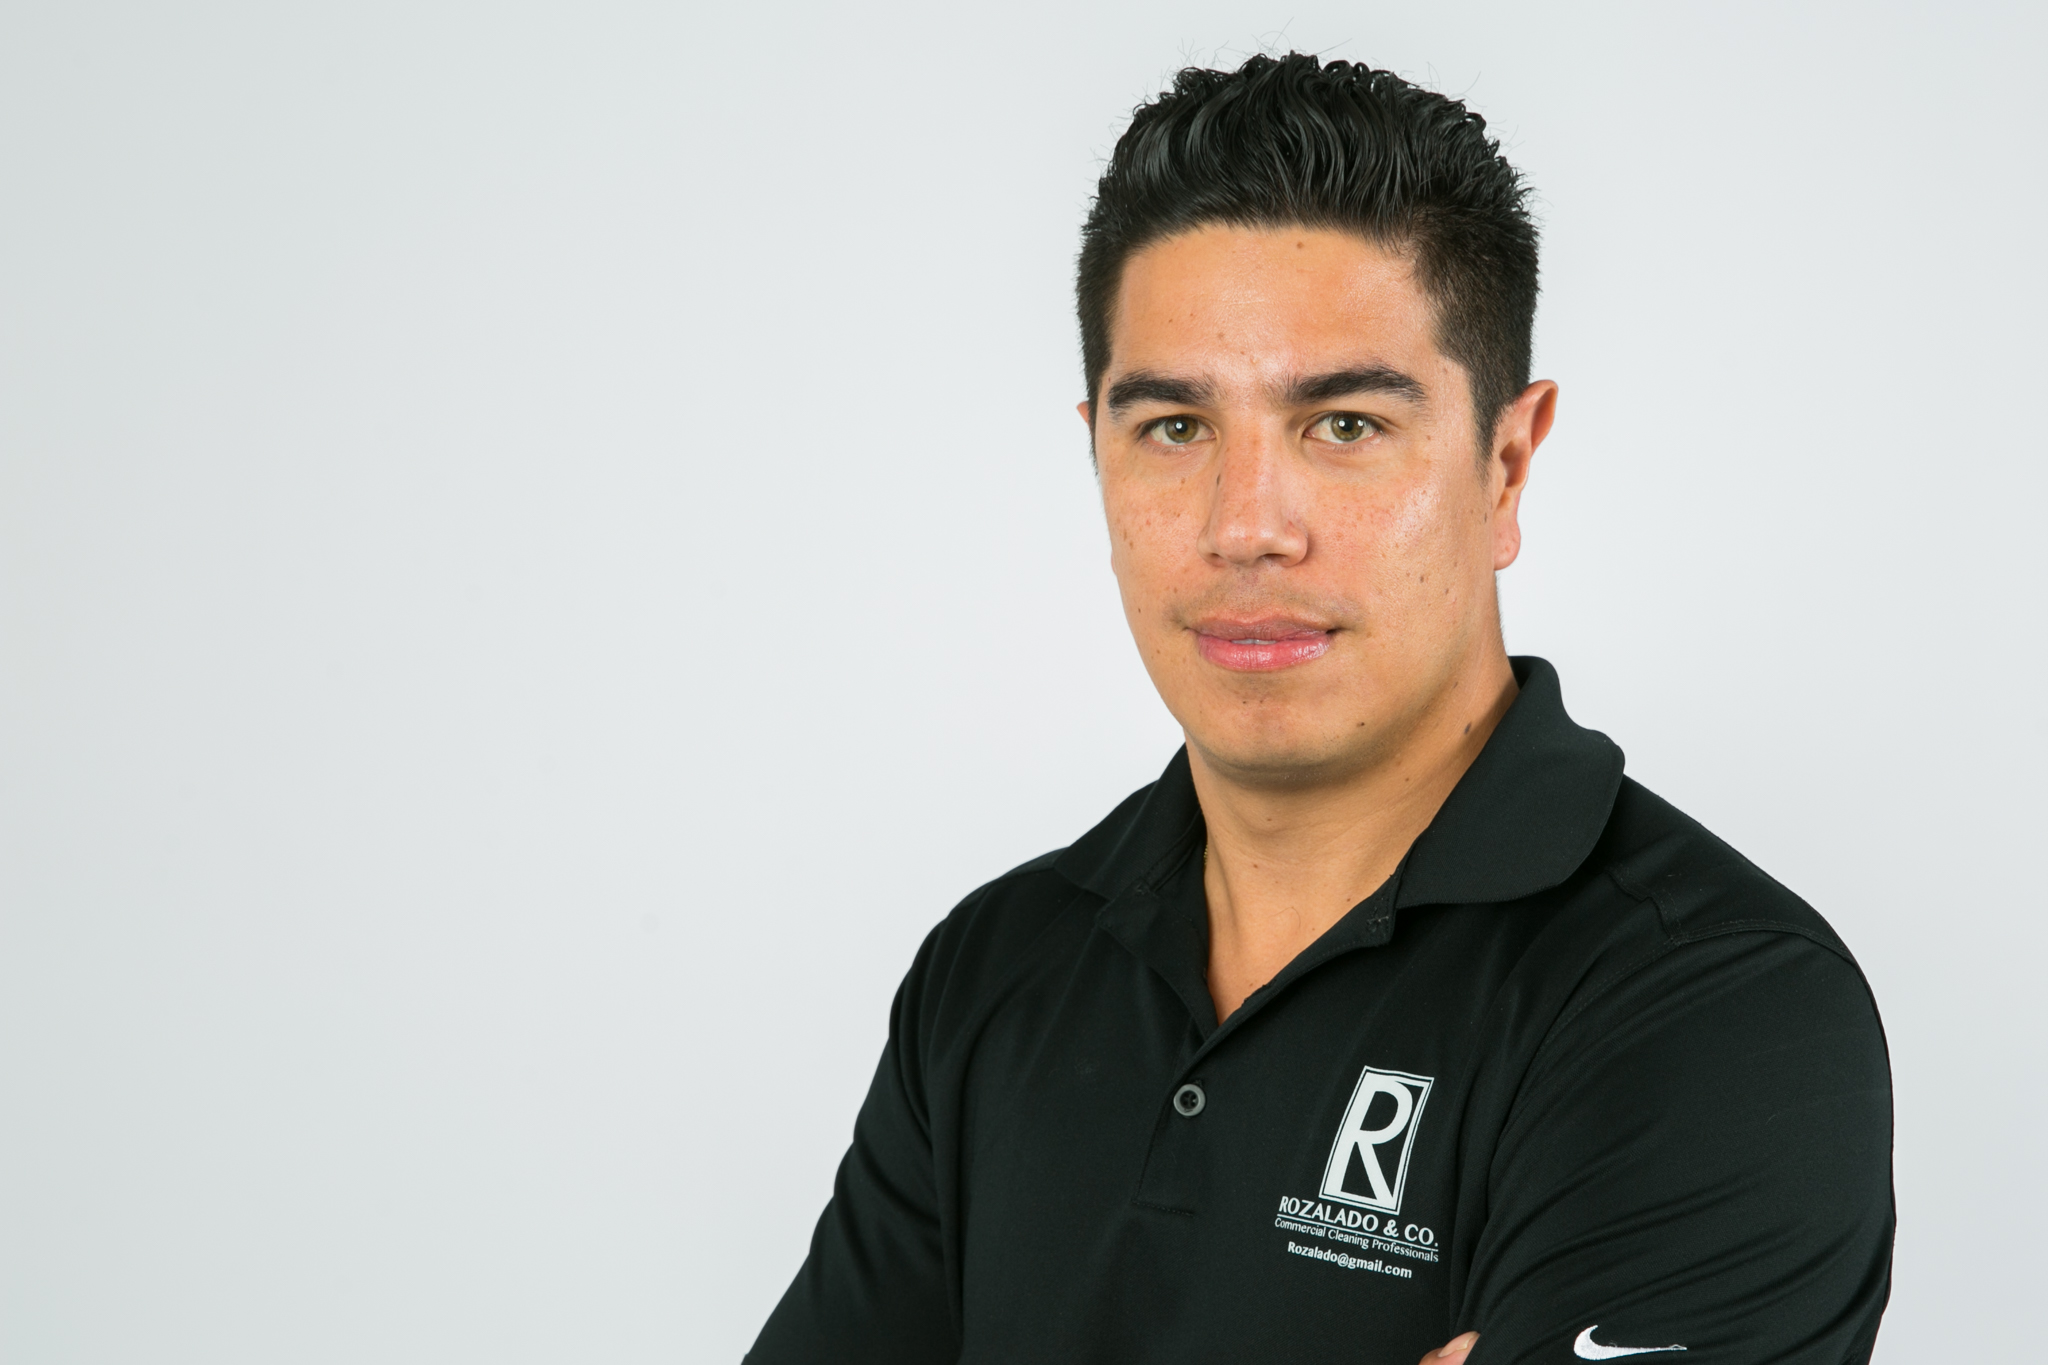 Ricky Regalado, Founder of RozaRoute